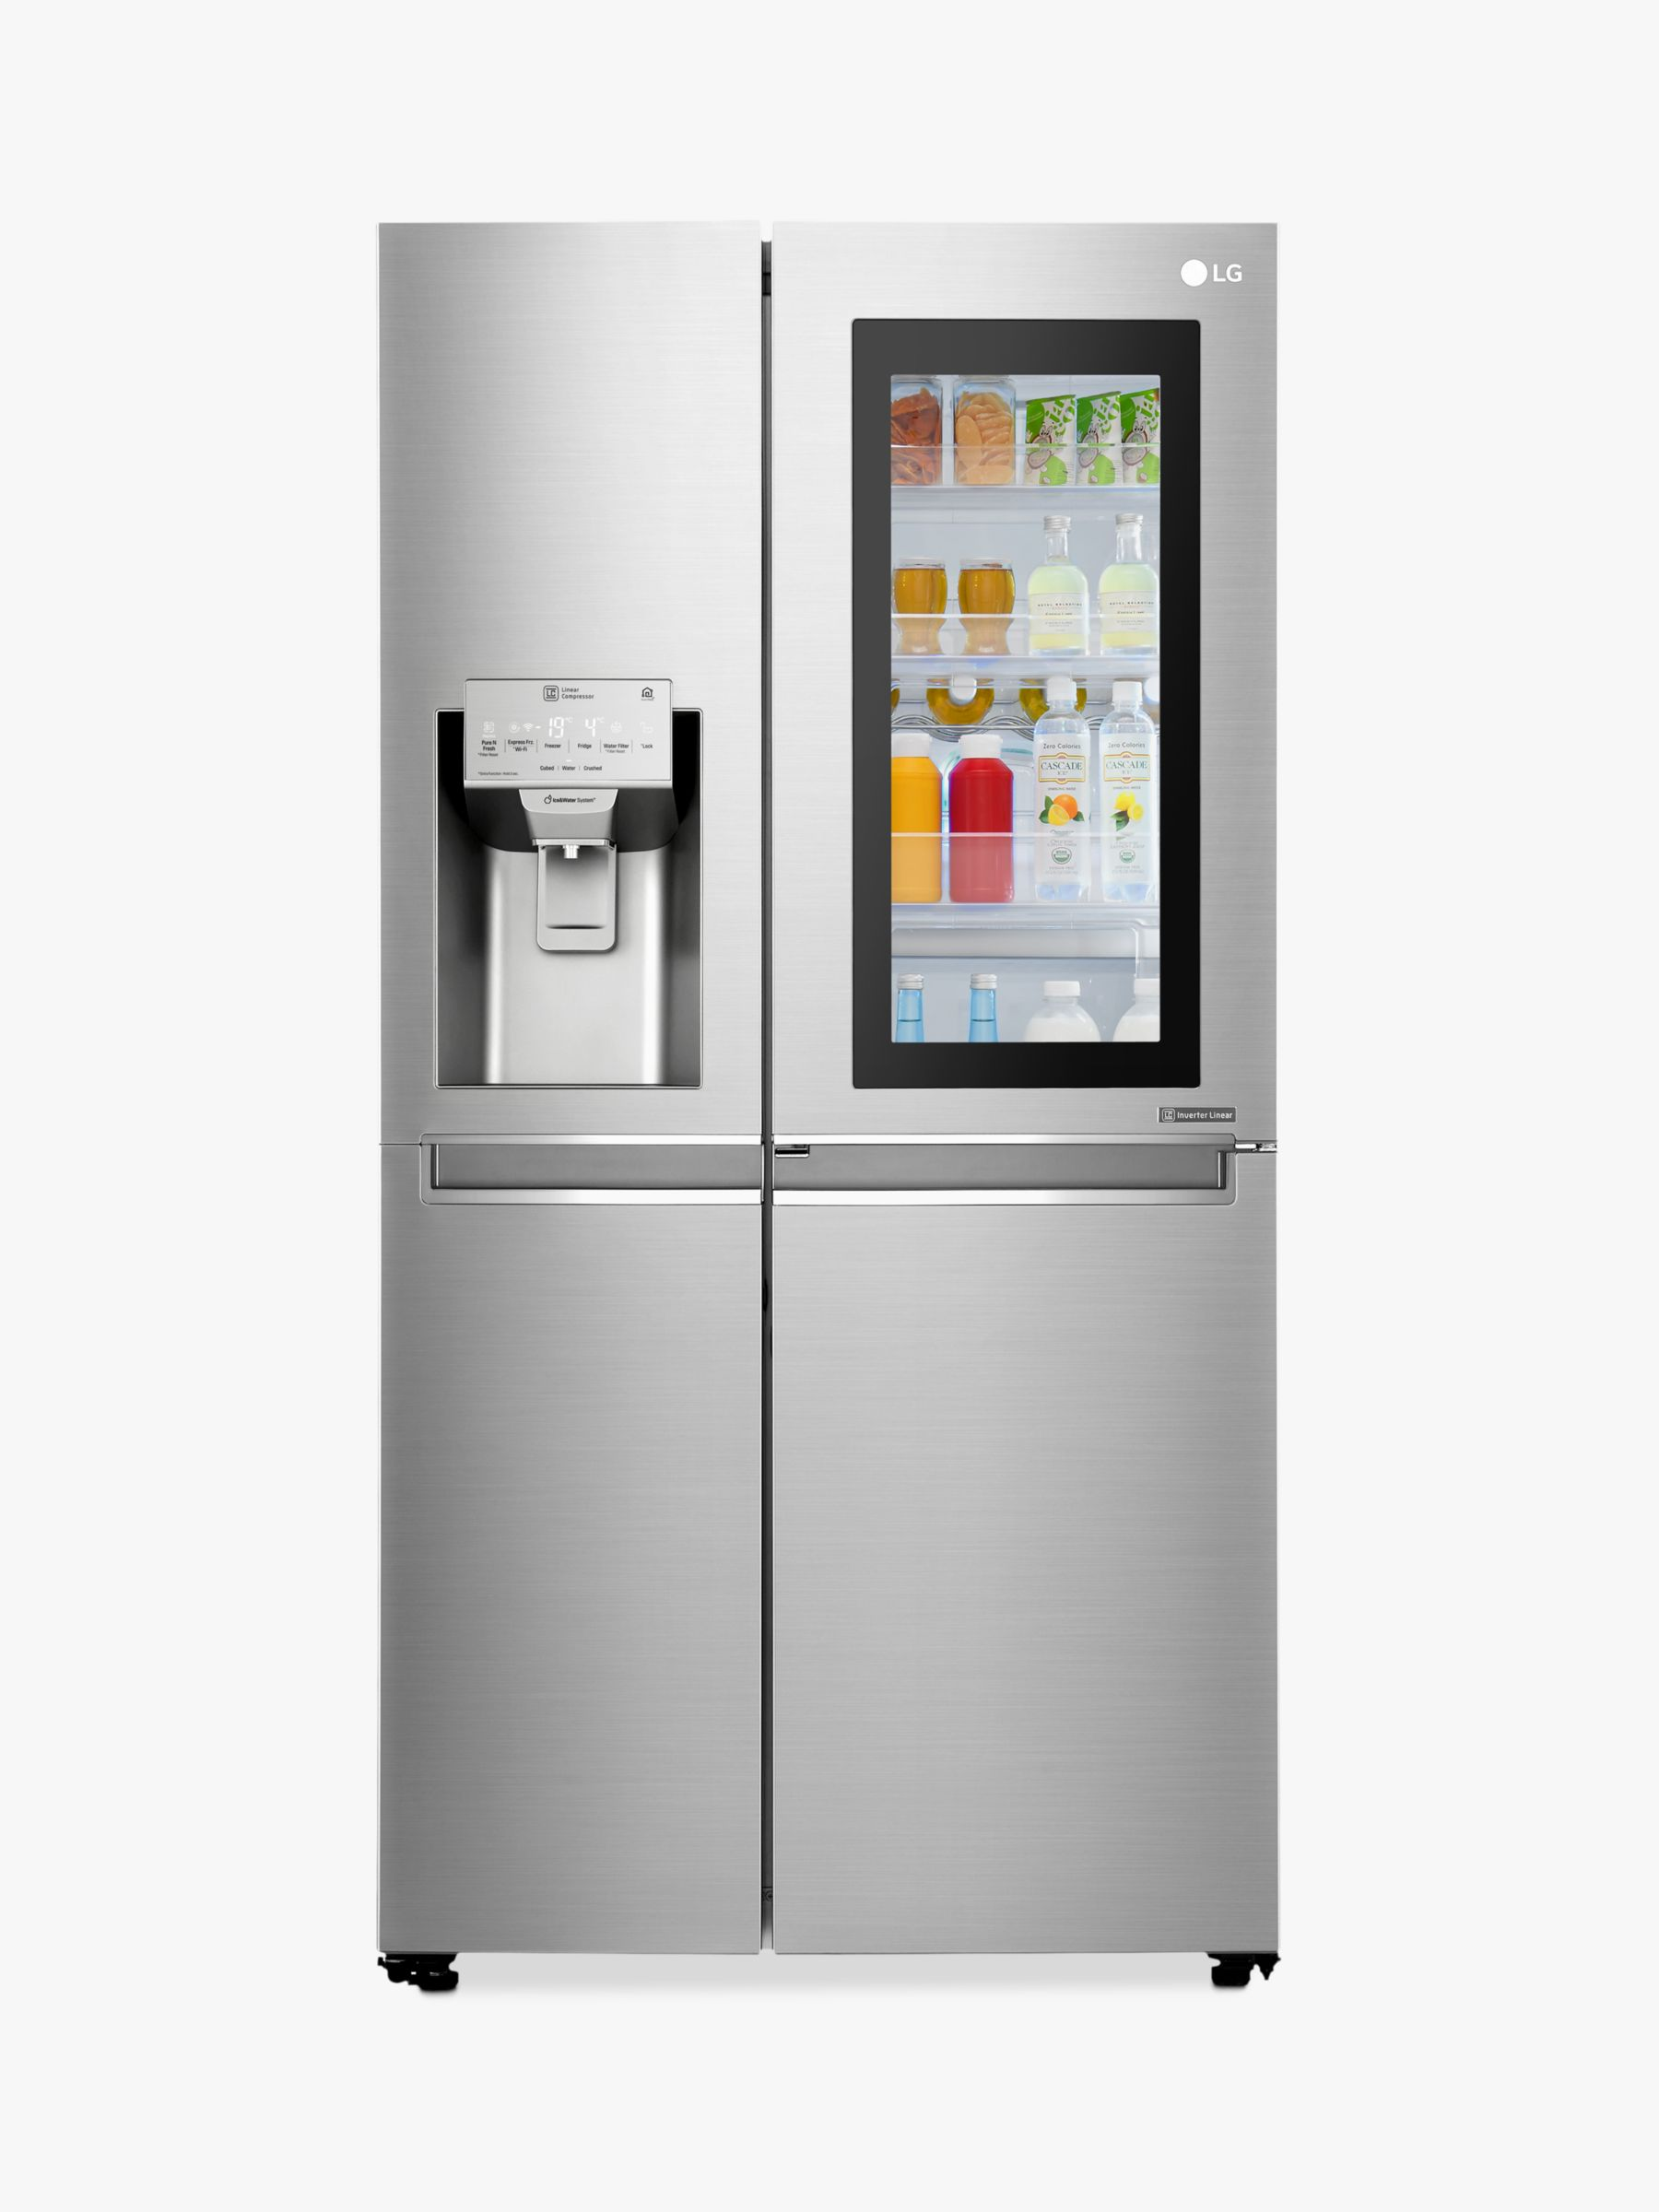 LG LG GSX960NSVZ InstaView Wi-Fi American Style Plumbed Water Filter Fridge Freezer, A++ Energy Rating, 91.2cm Wide, Premium Steel